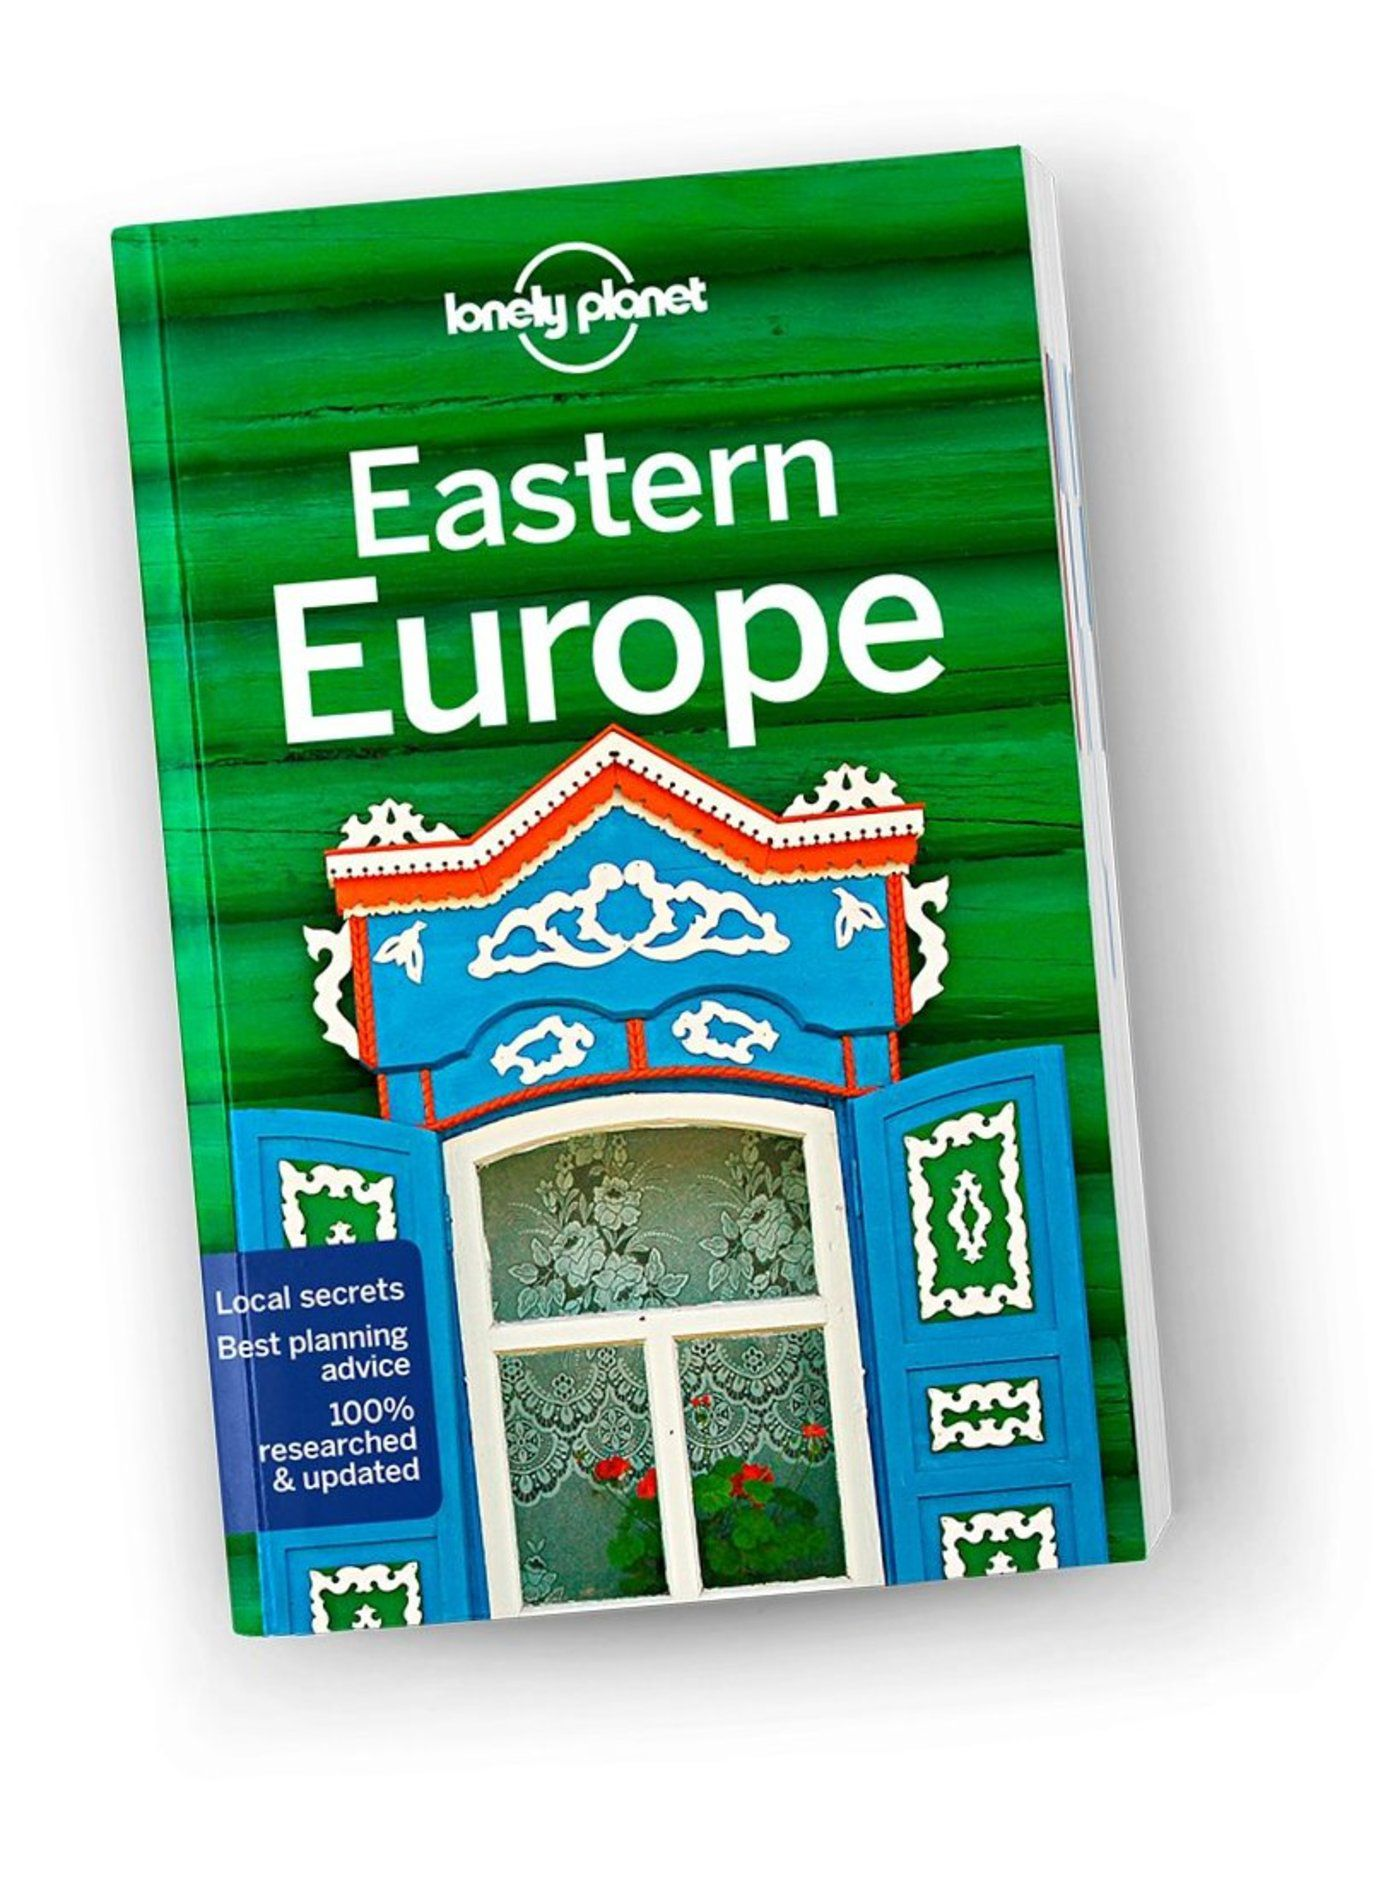 Eastern Europe travel guide - 15th edition